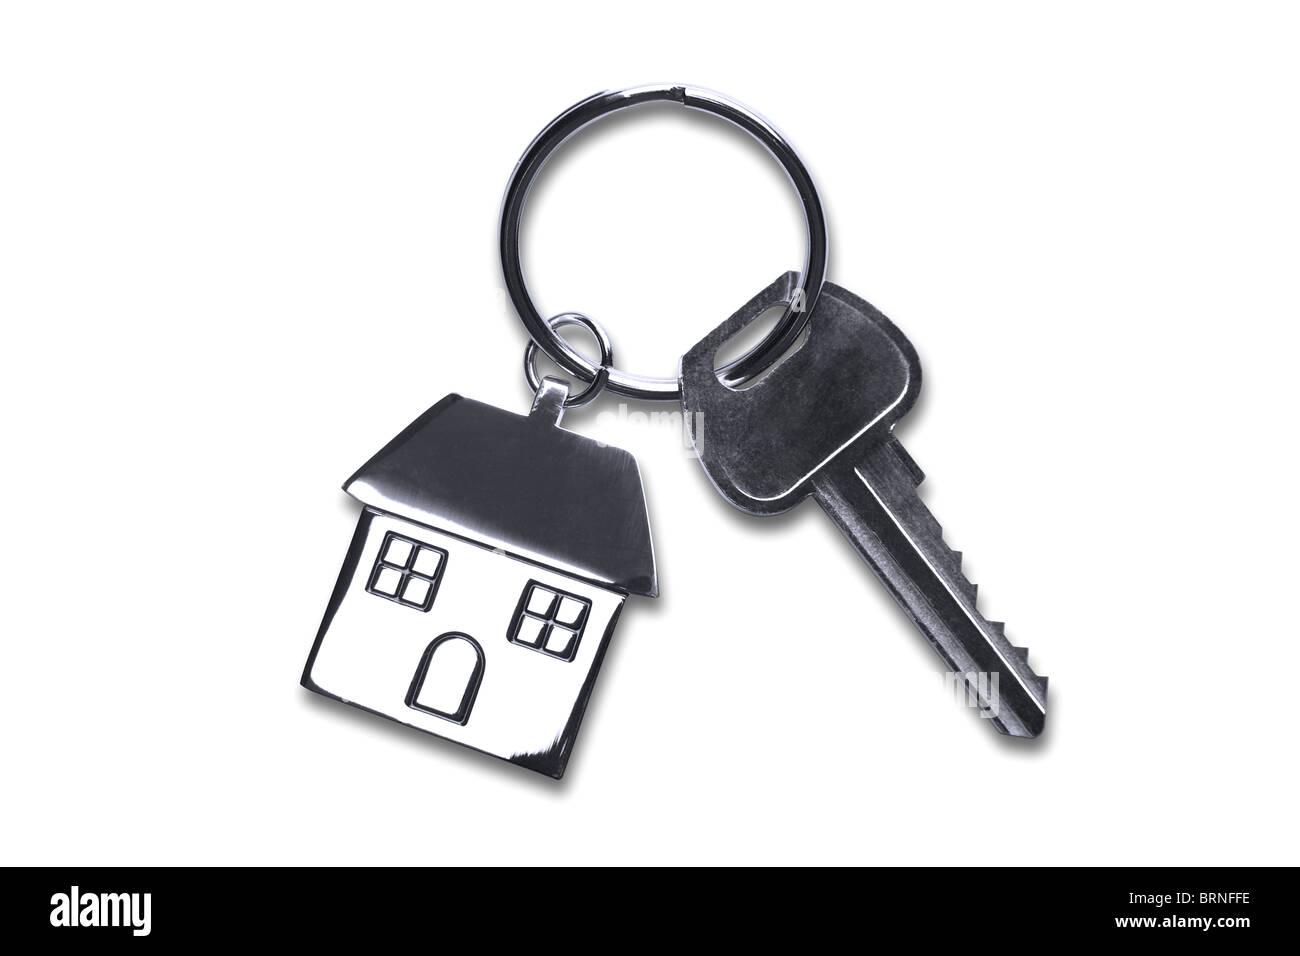 Keys to a new house isolated on white with clipping path. - Stock Image